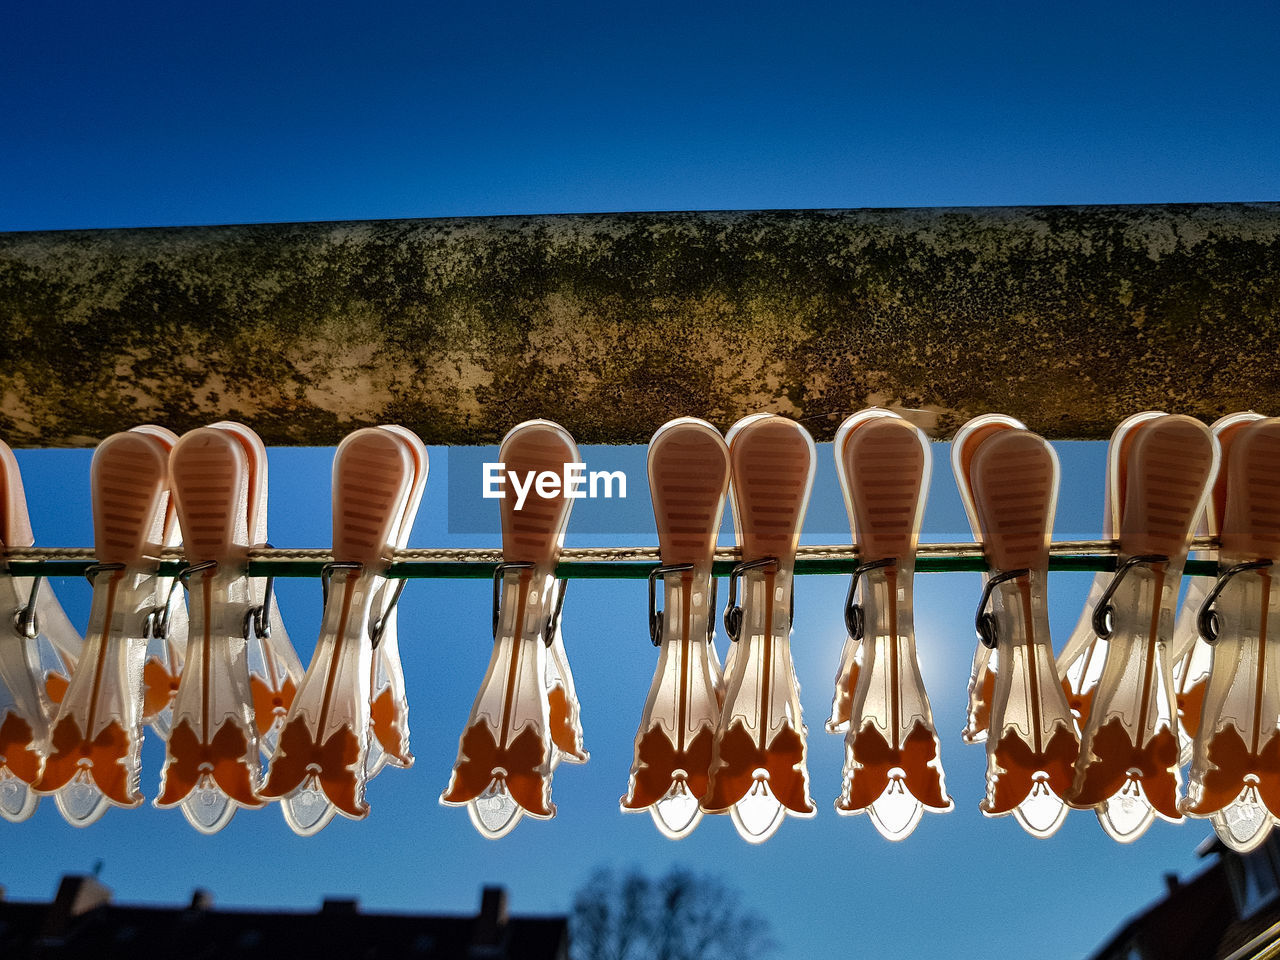 sky, clear sky, hanging, nature, side by side, no people, in a row, blue, day, tree, plant, railing, sunlight, outdoors, low angle view, copy space, group of objects, tranquility, metal, repetition